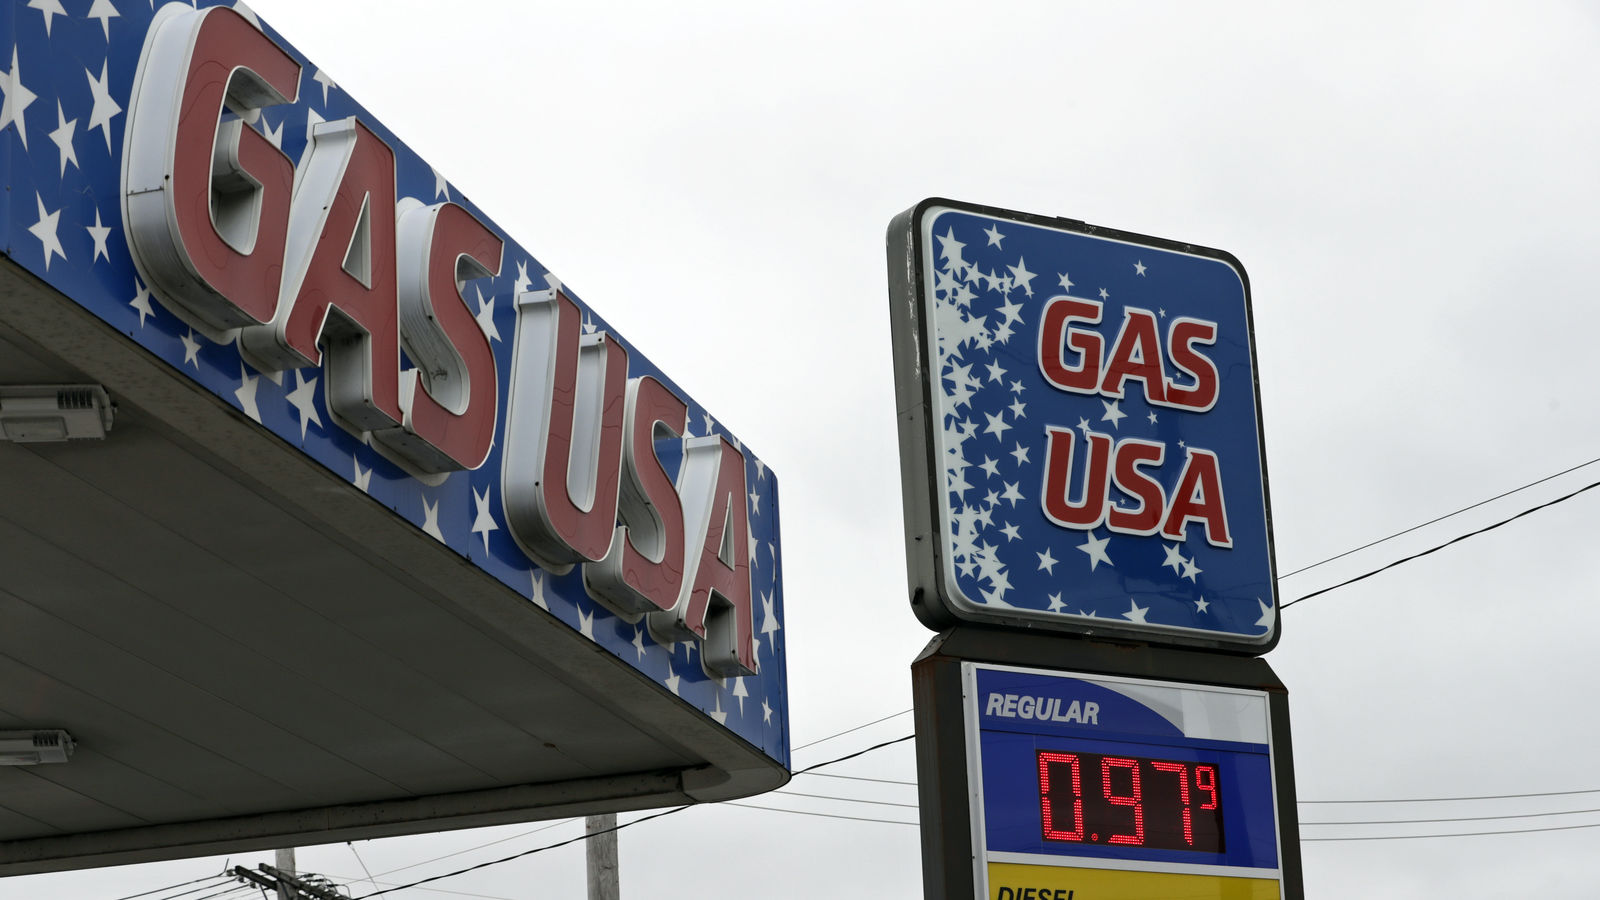 Gas USA is selling gas for 97.9 cents a gallon, Monday, March 30, 2020, in Cleveland.{ } (AP Photo/Tony Dejak)